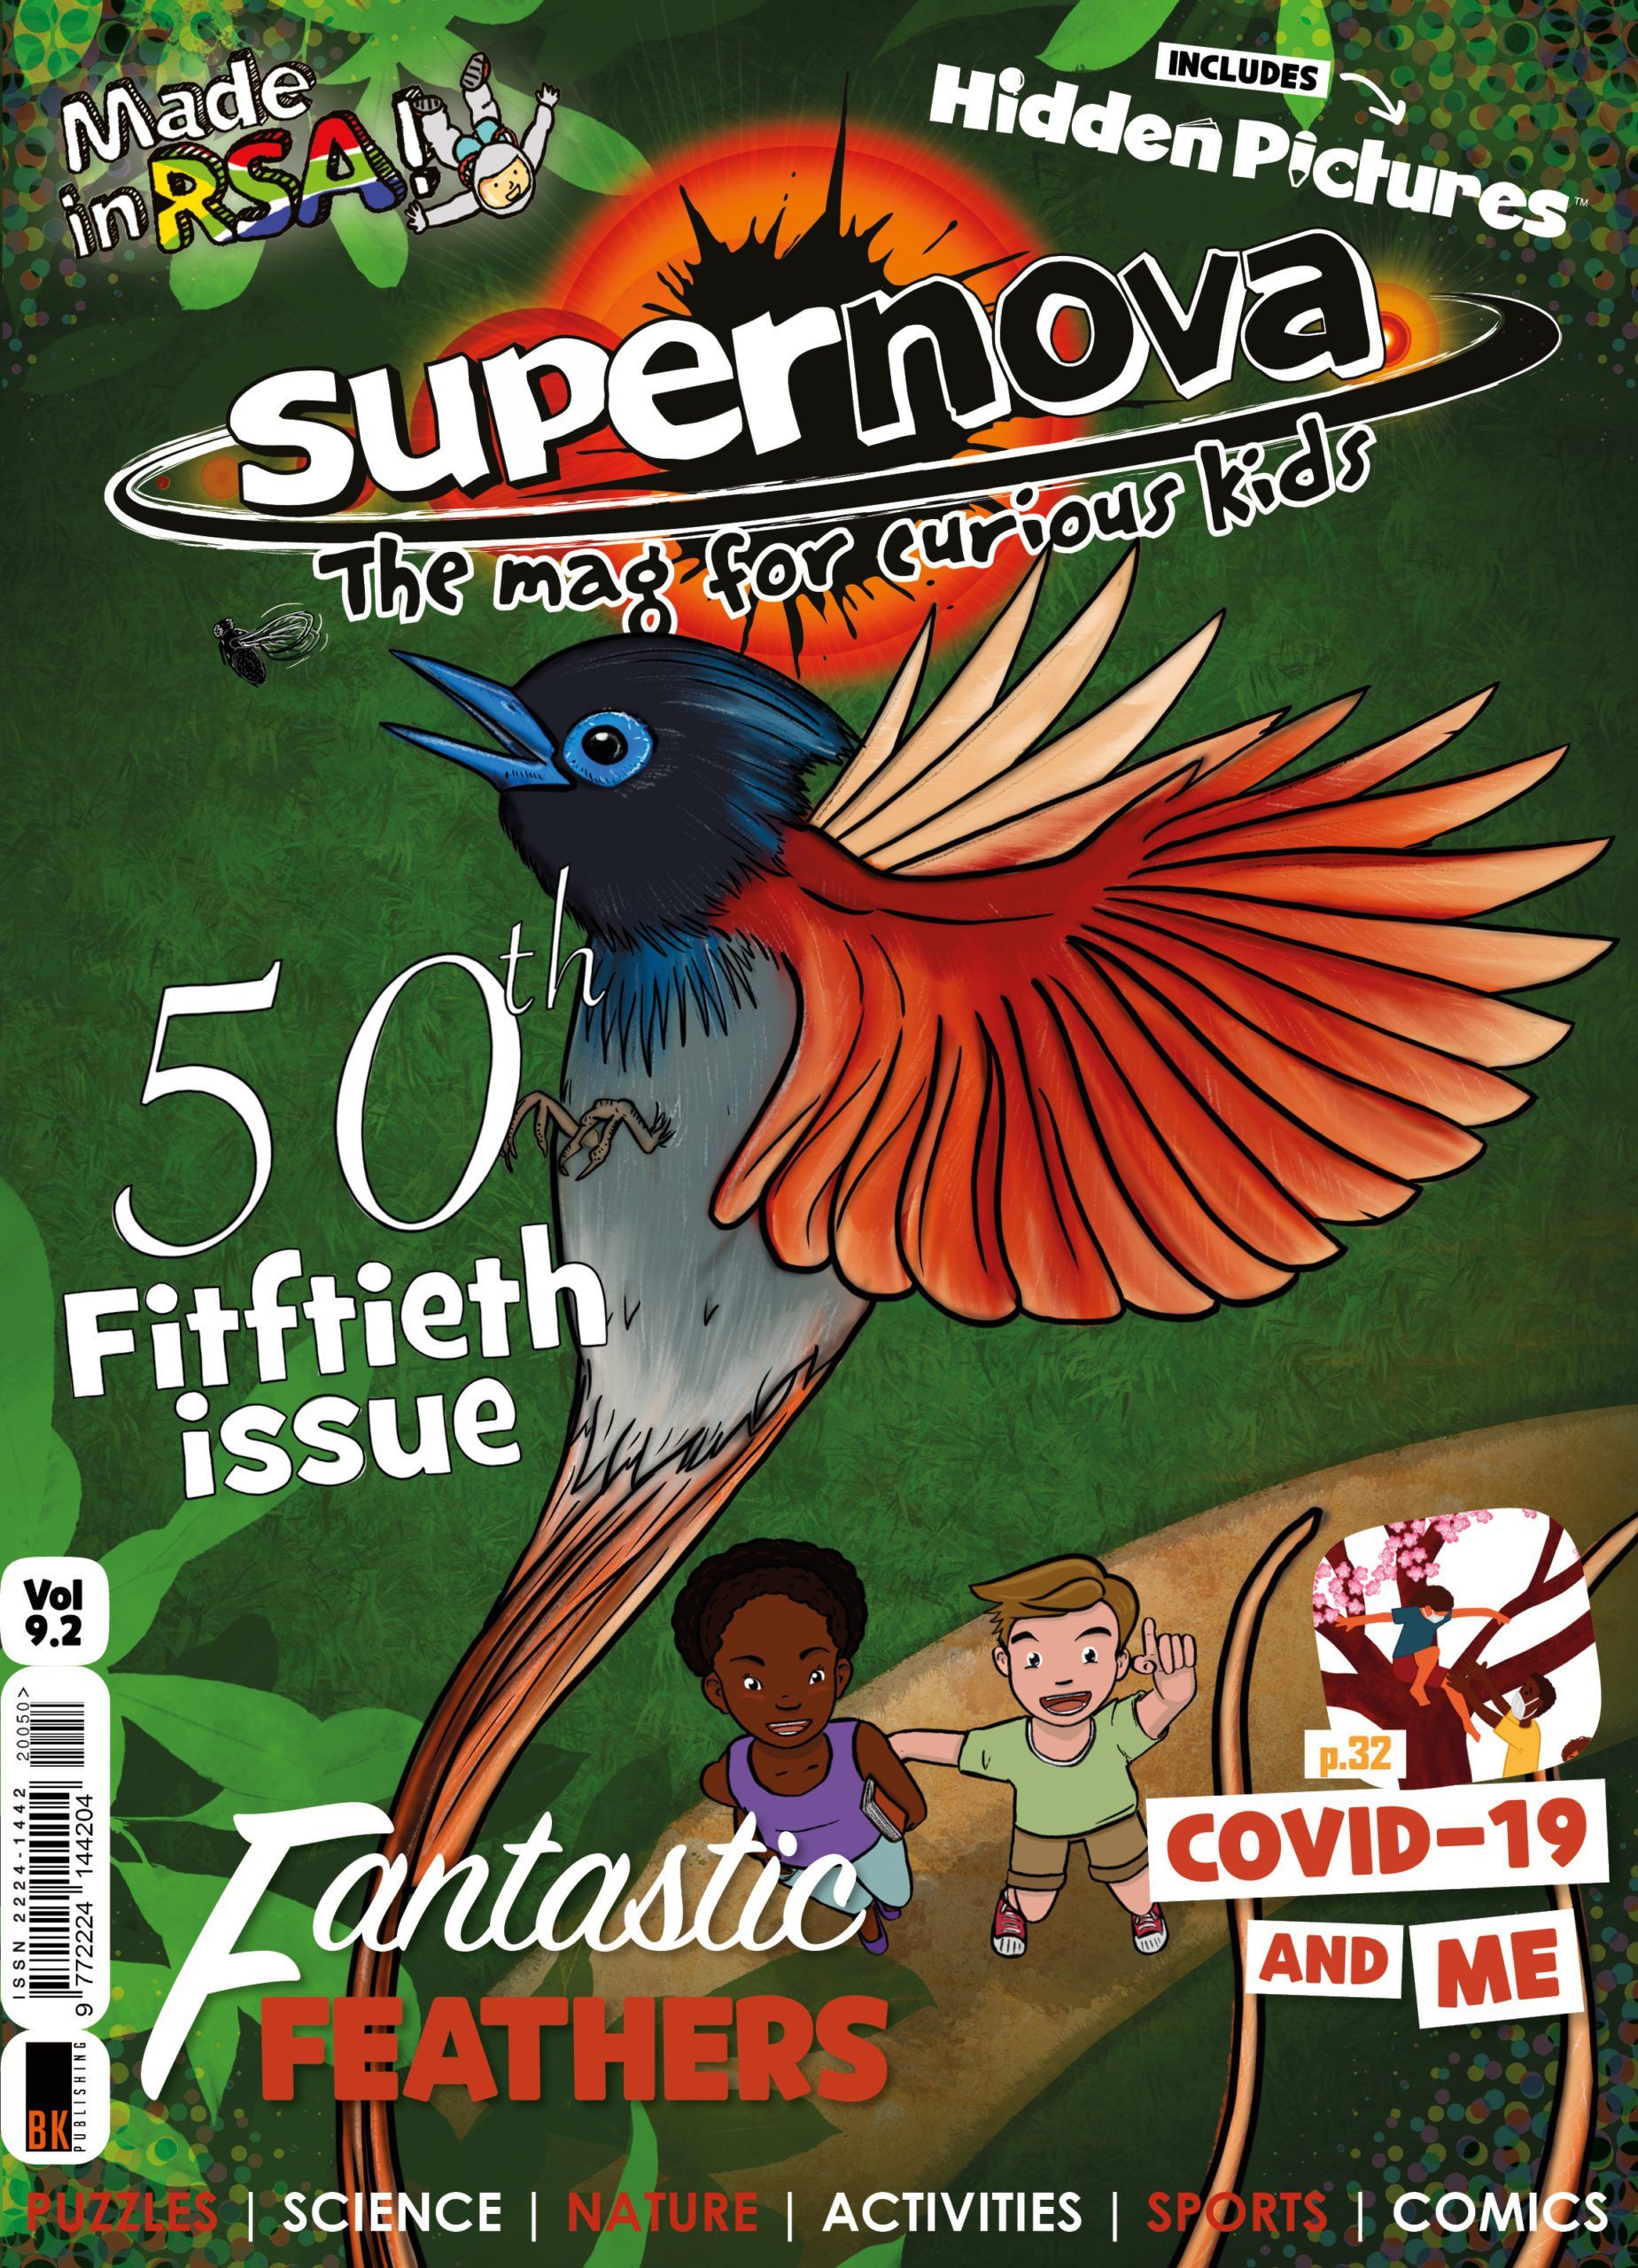 Supernova Issue 9.2 50th Issue